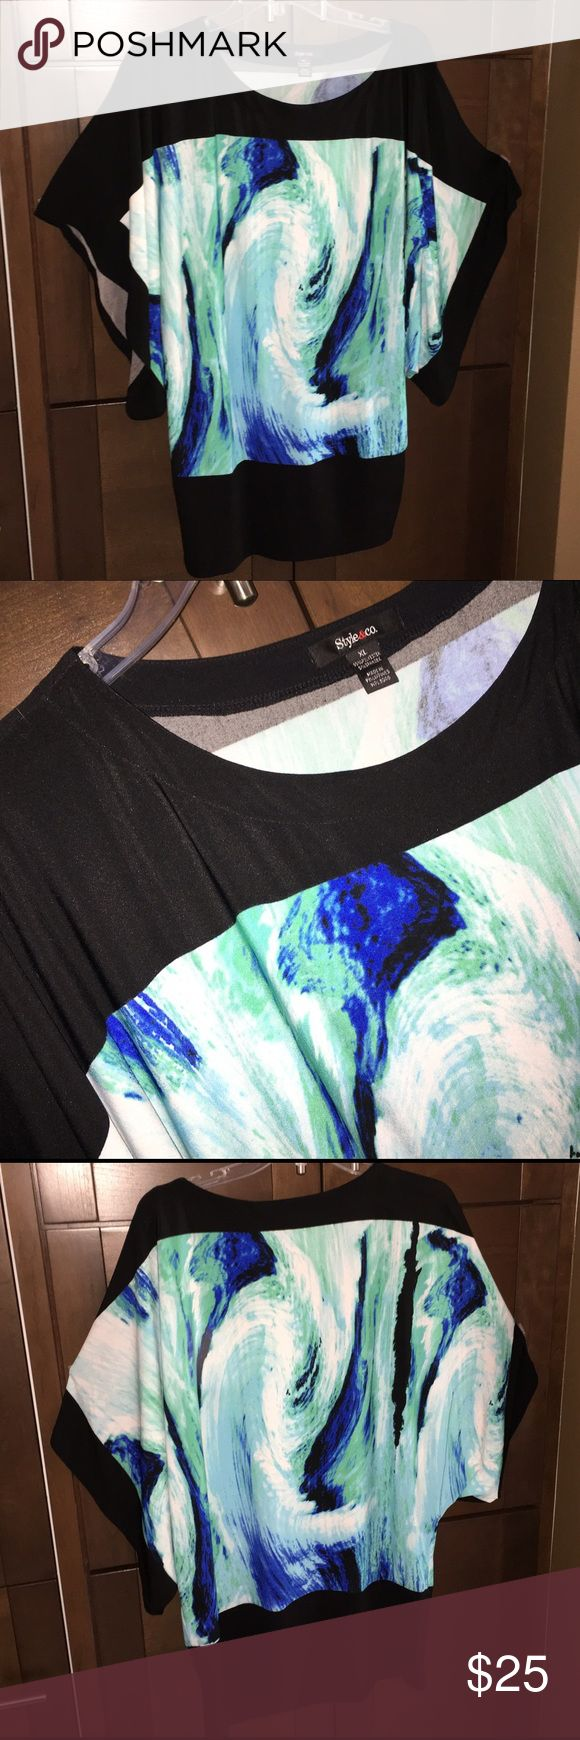 """Batwing tunic Worn ONCE. Pretty batwing tunic with blue, white and green swirl pattern and black accents along edges and bottom. 33"""" long shoulder to hem. 95% polyester, 5% spandex. Soft knit, very comfy and flattering. Style & Co Tops Tunics"""